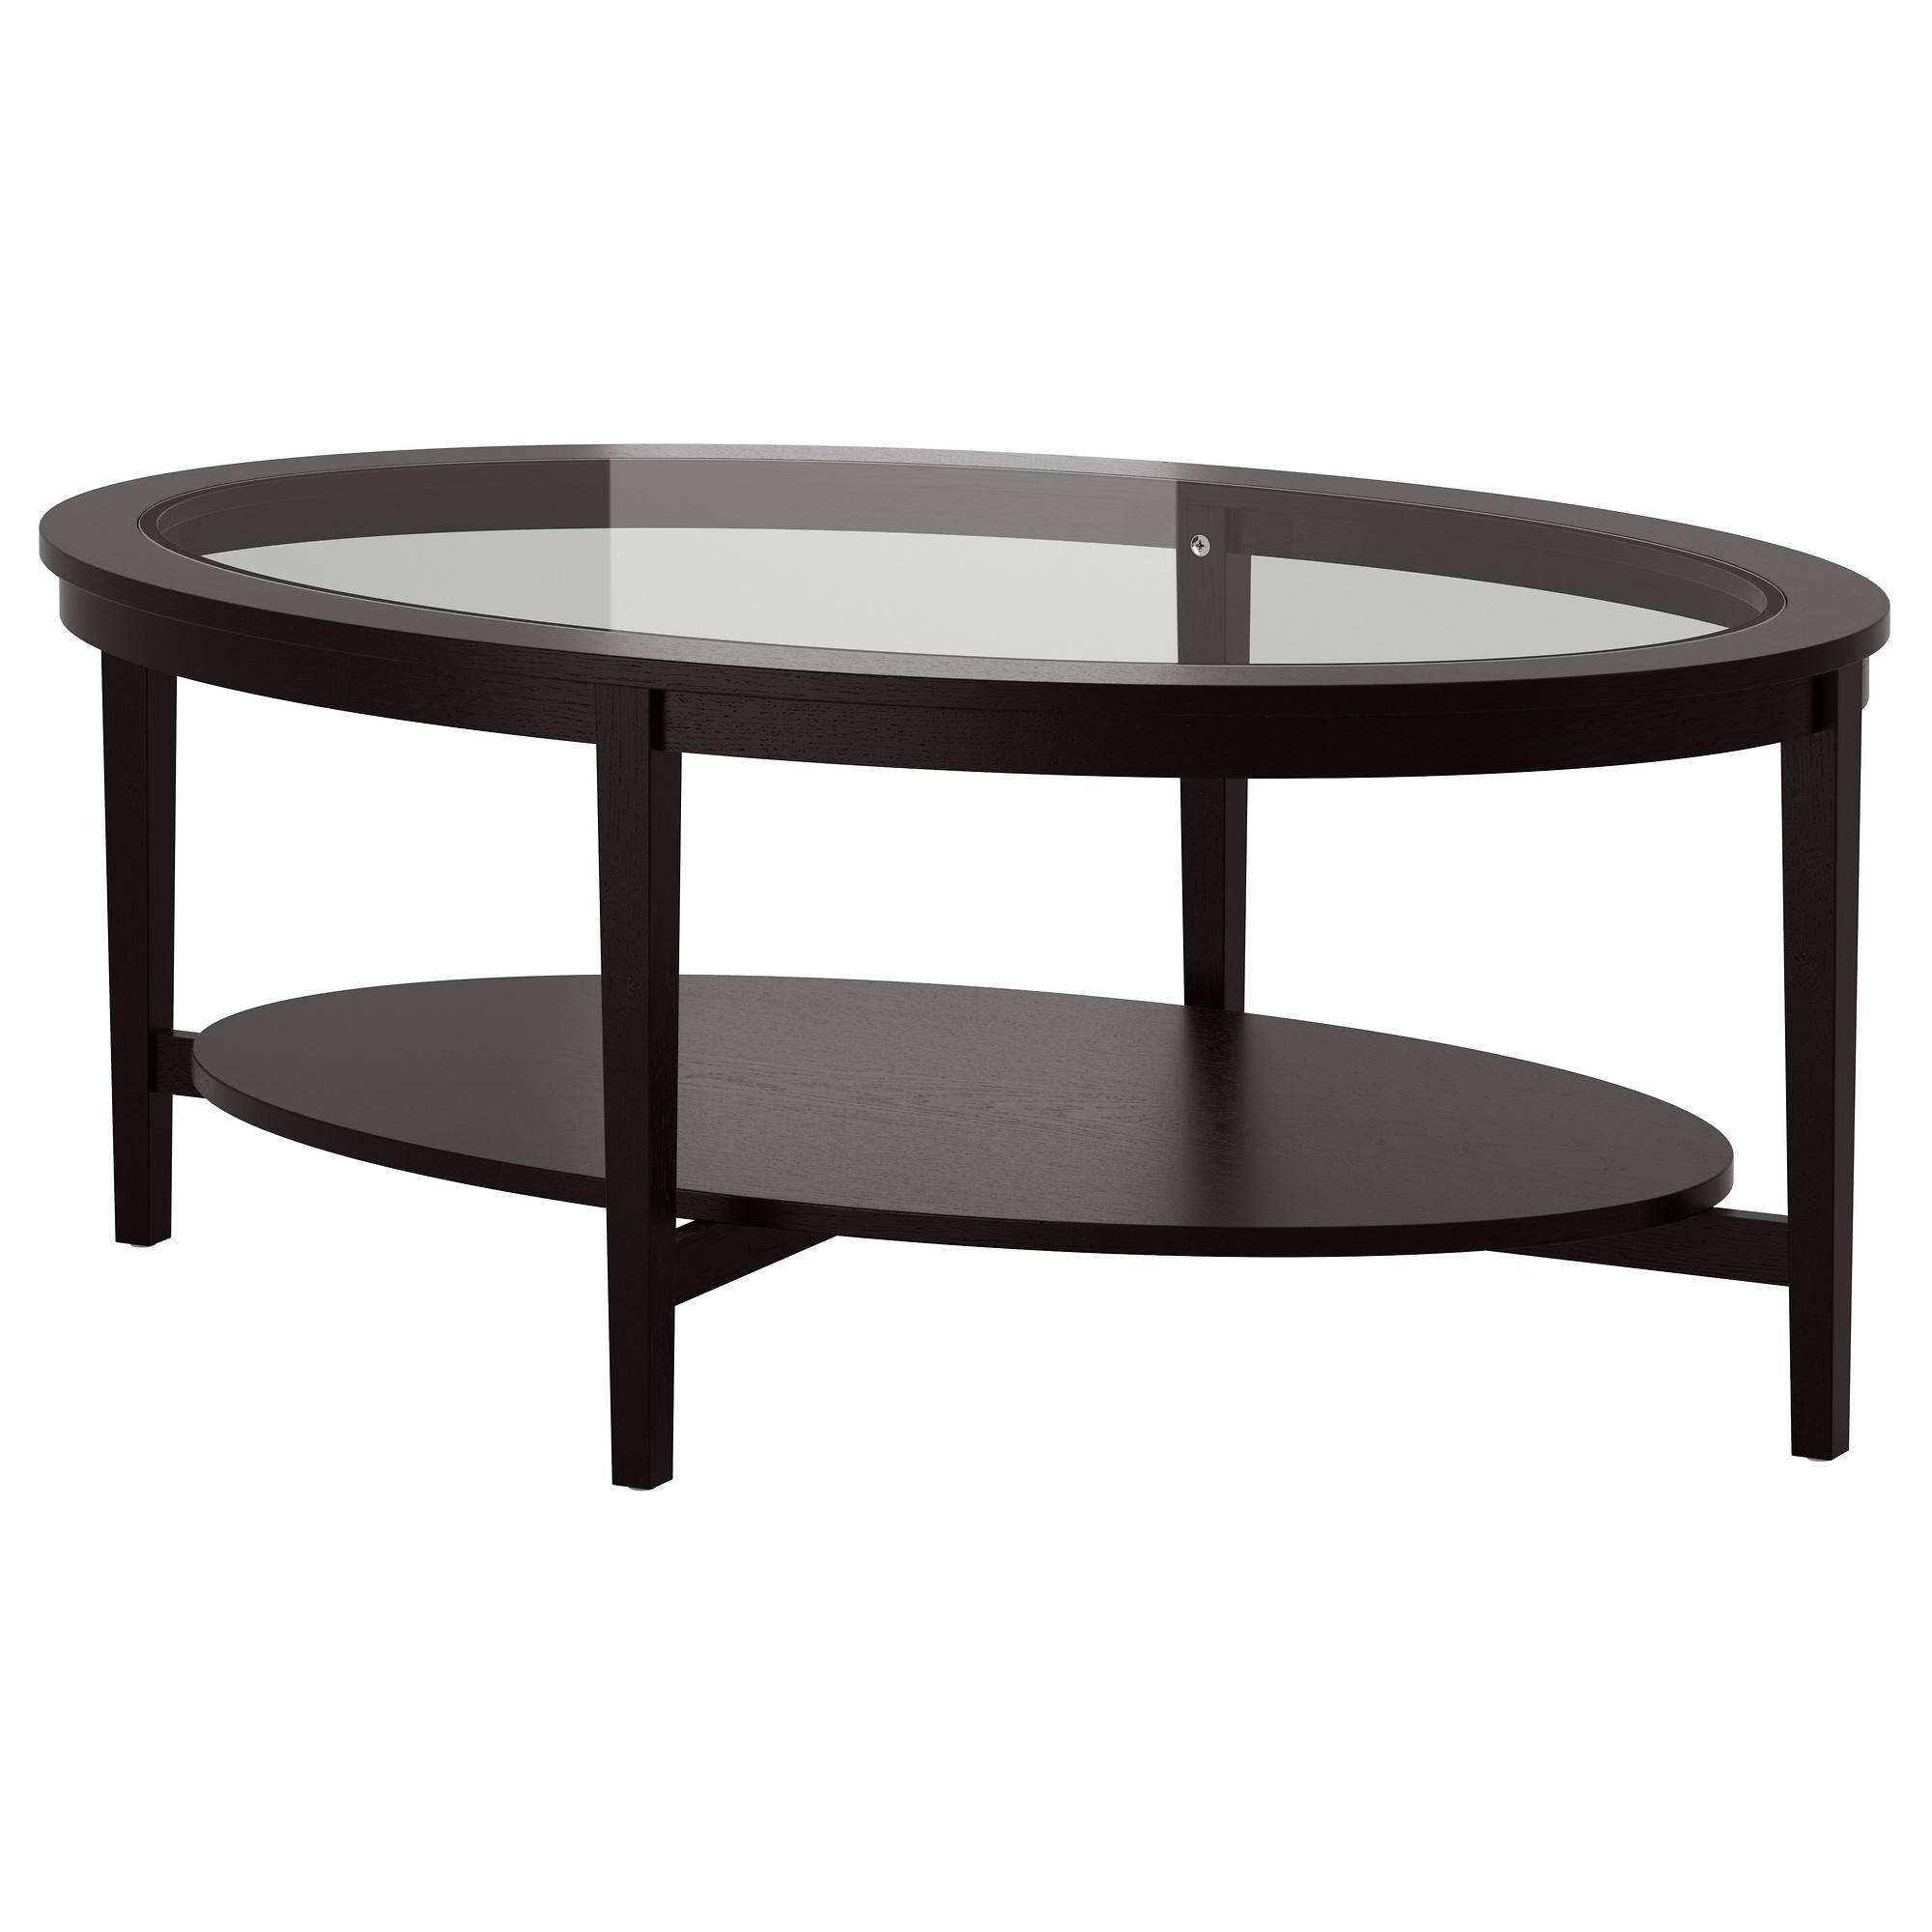 Coffee Tables & Console Tables - Ikea with Coffee Tables With Oval Shape (Image 11 of 30)